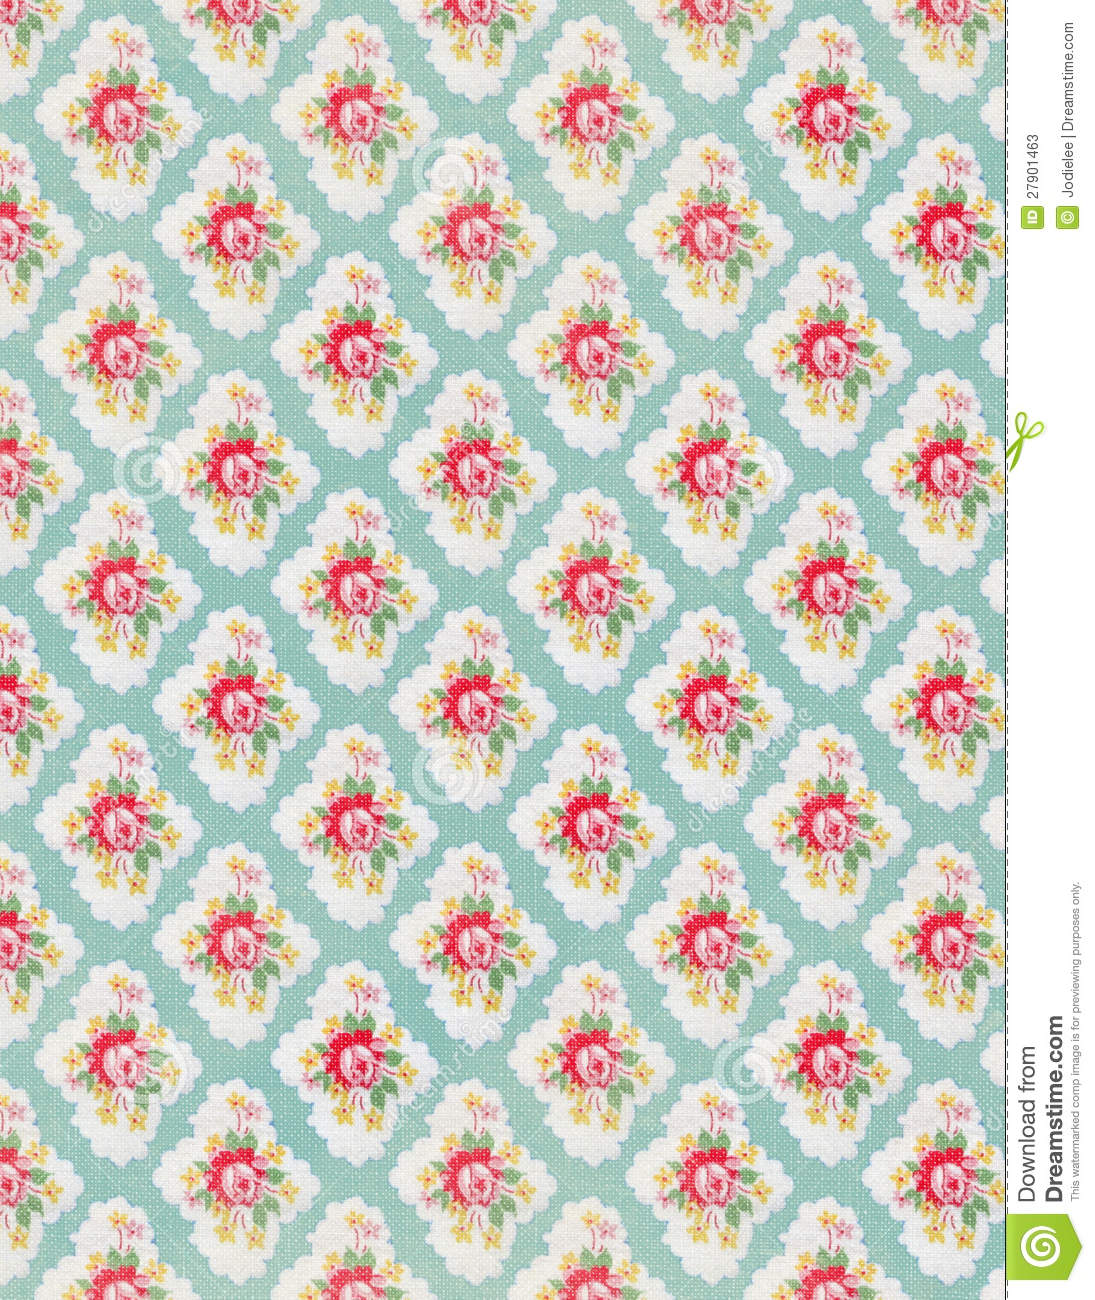 vintage repeating wallpaper - photo #8